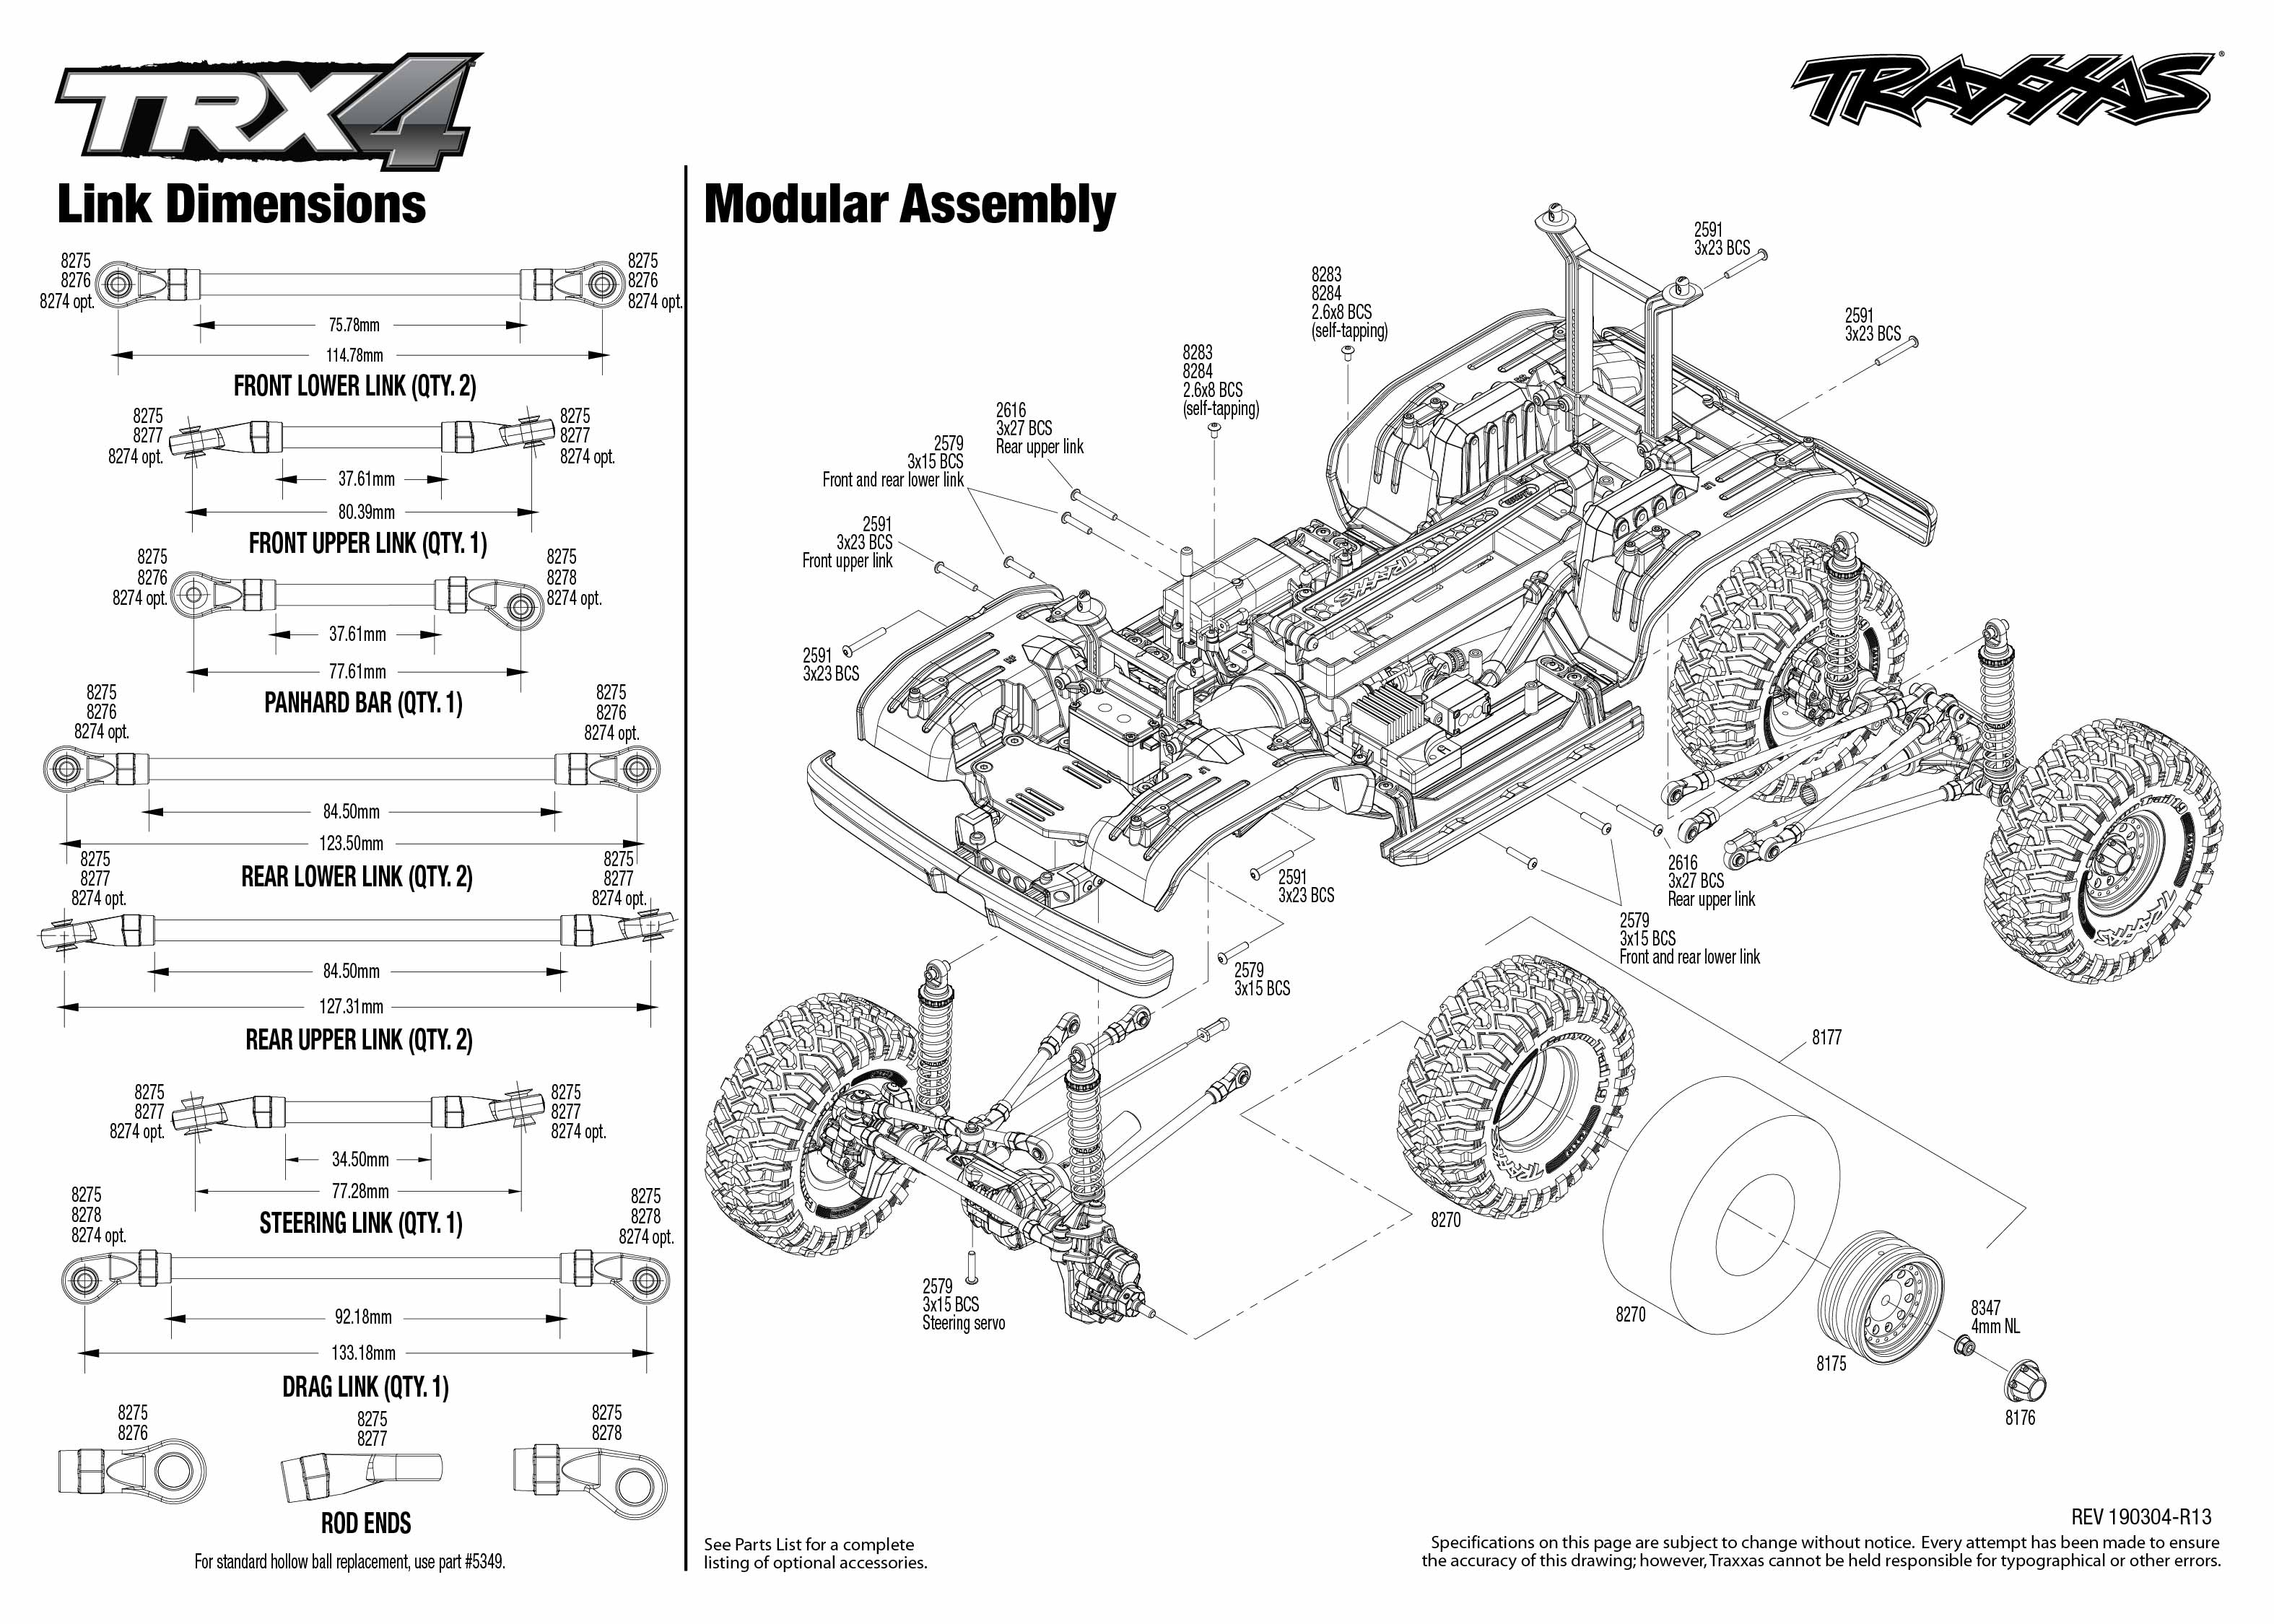 Traxxas Ford Bronco 4WD Electric Rock Crawler Truck with